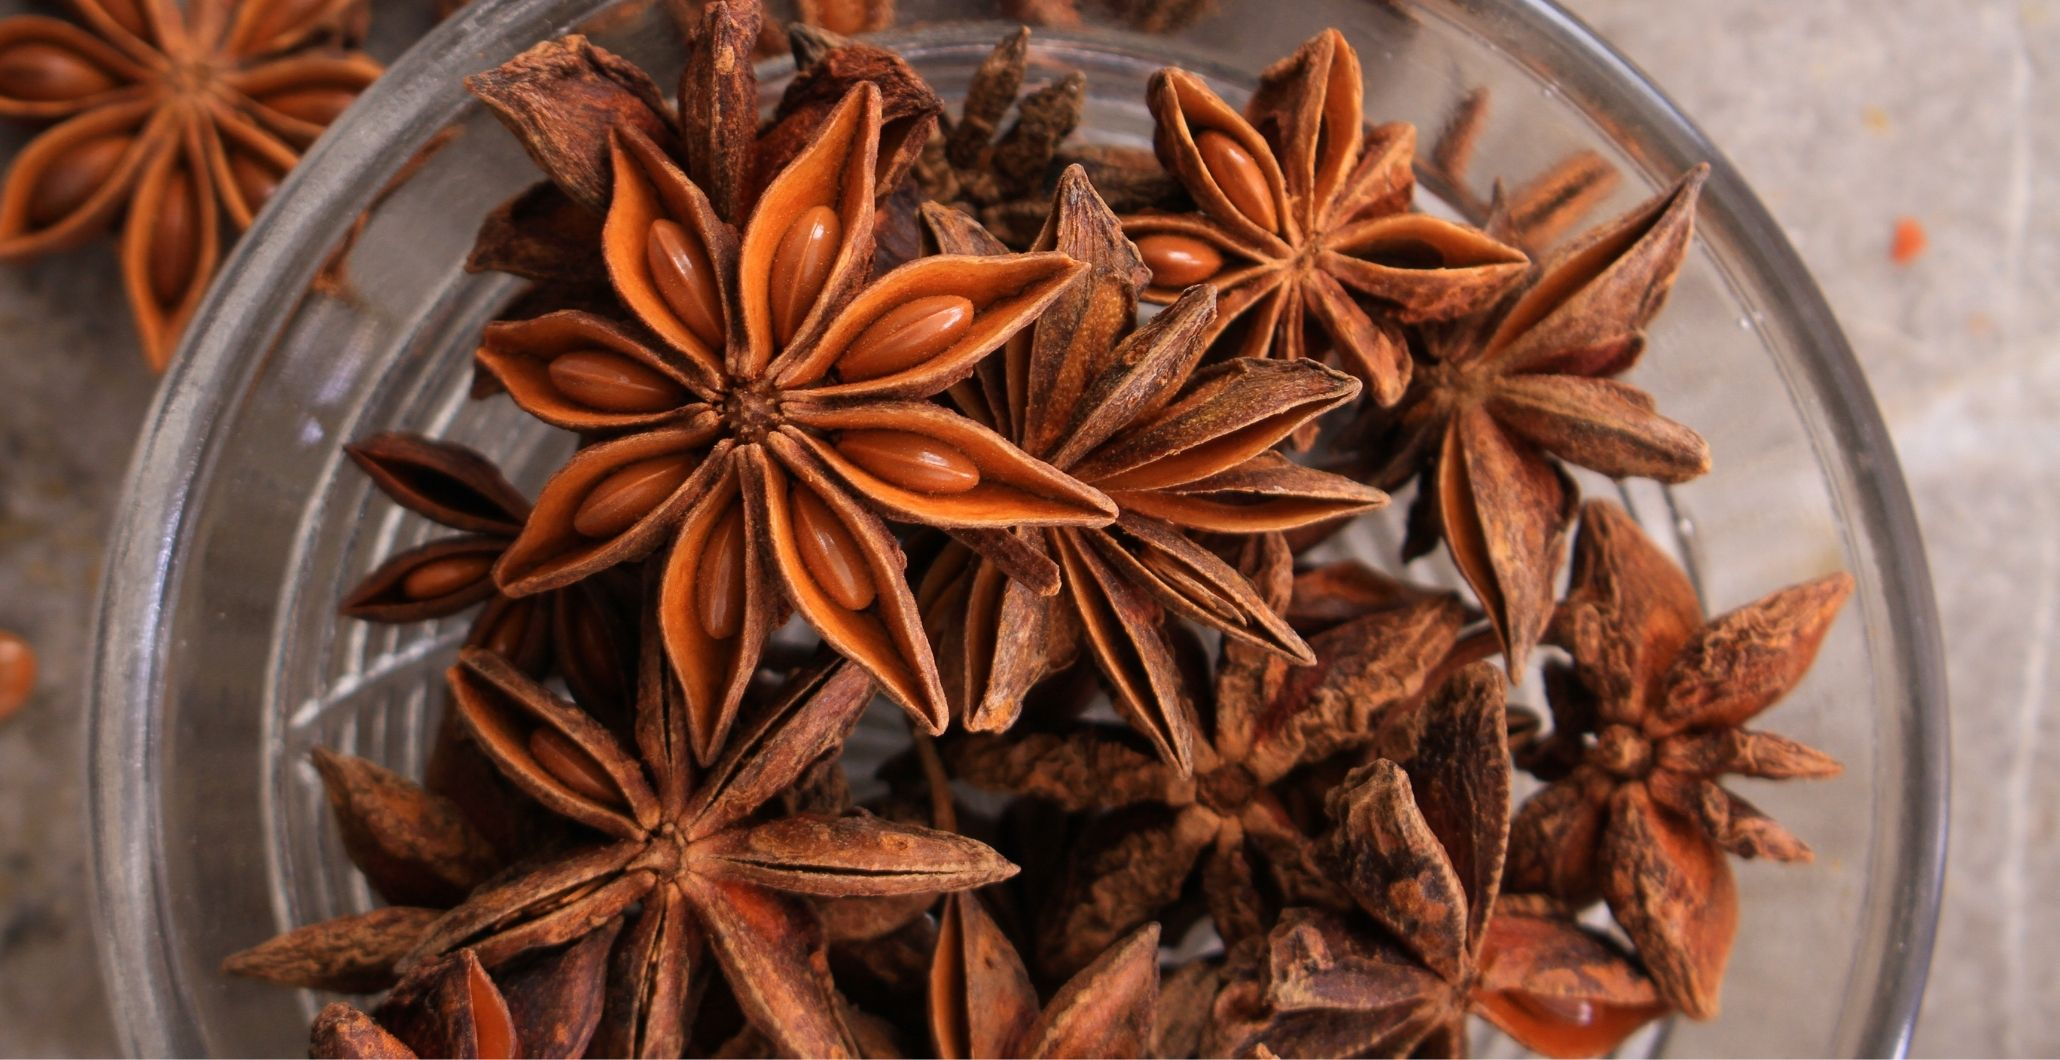 Spice It Up! Star Anise